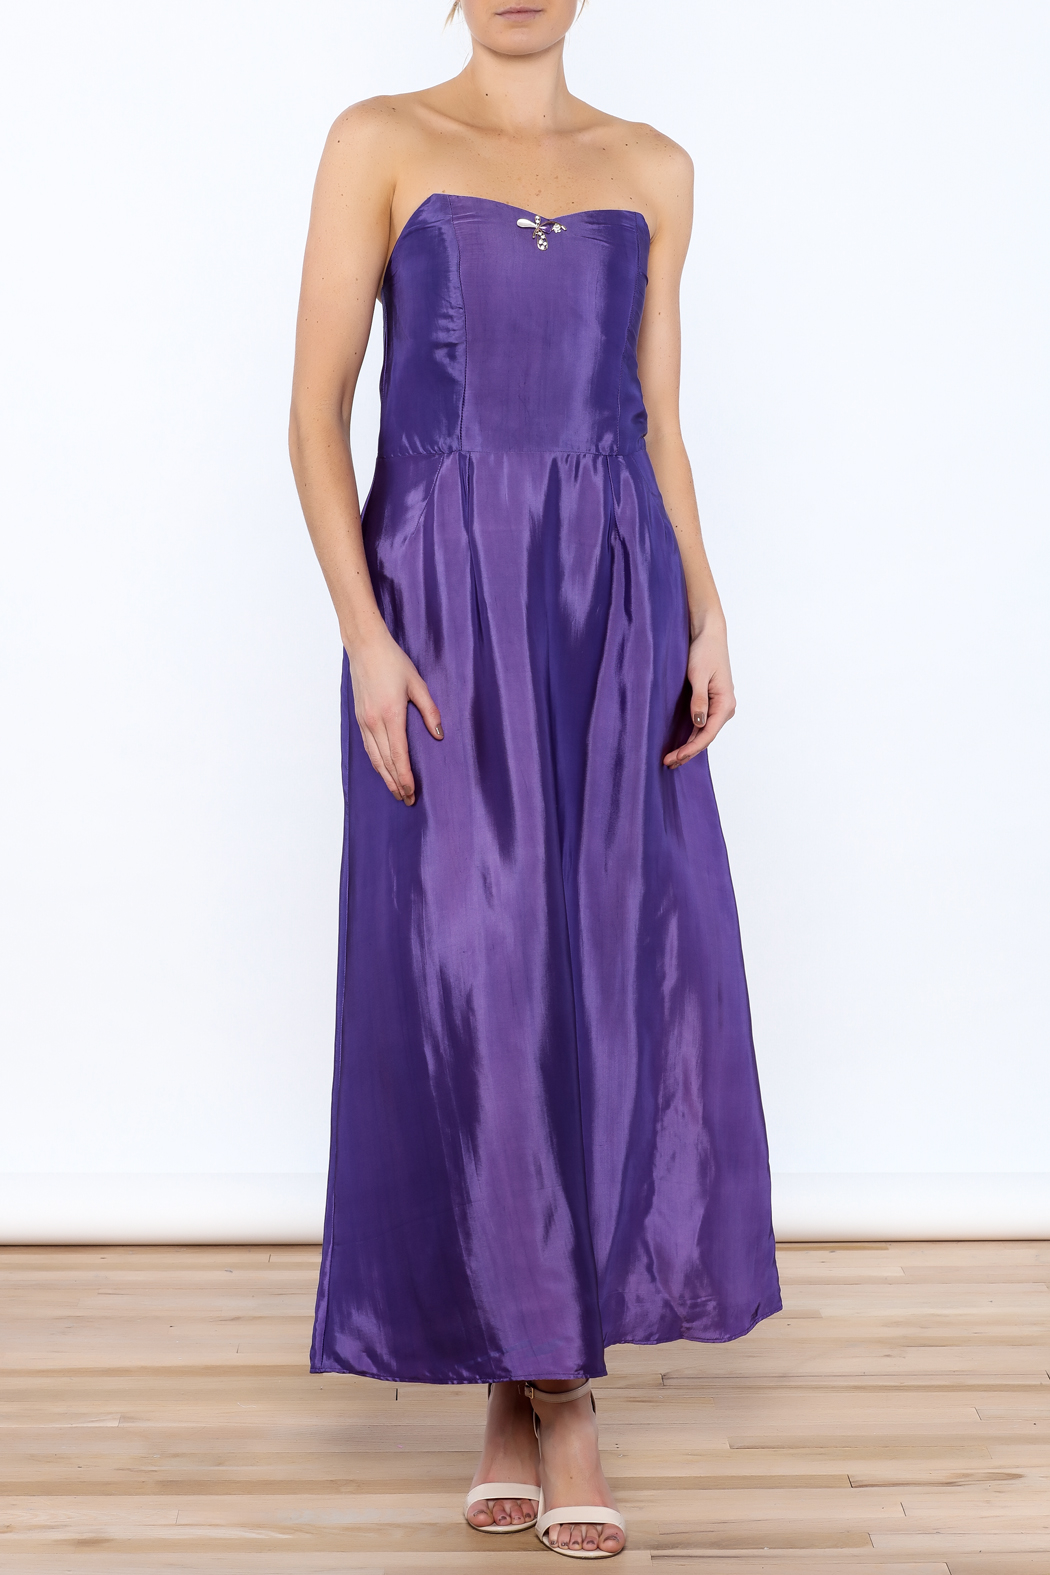 Dawn Sunflower Purple Strapless Silk Dress - Main Image